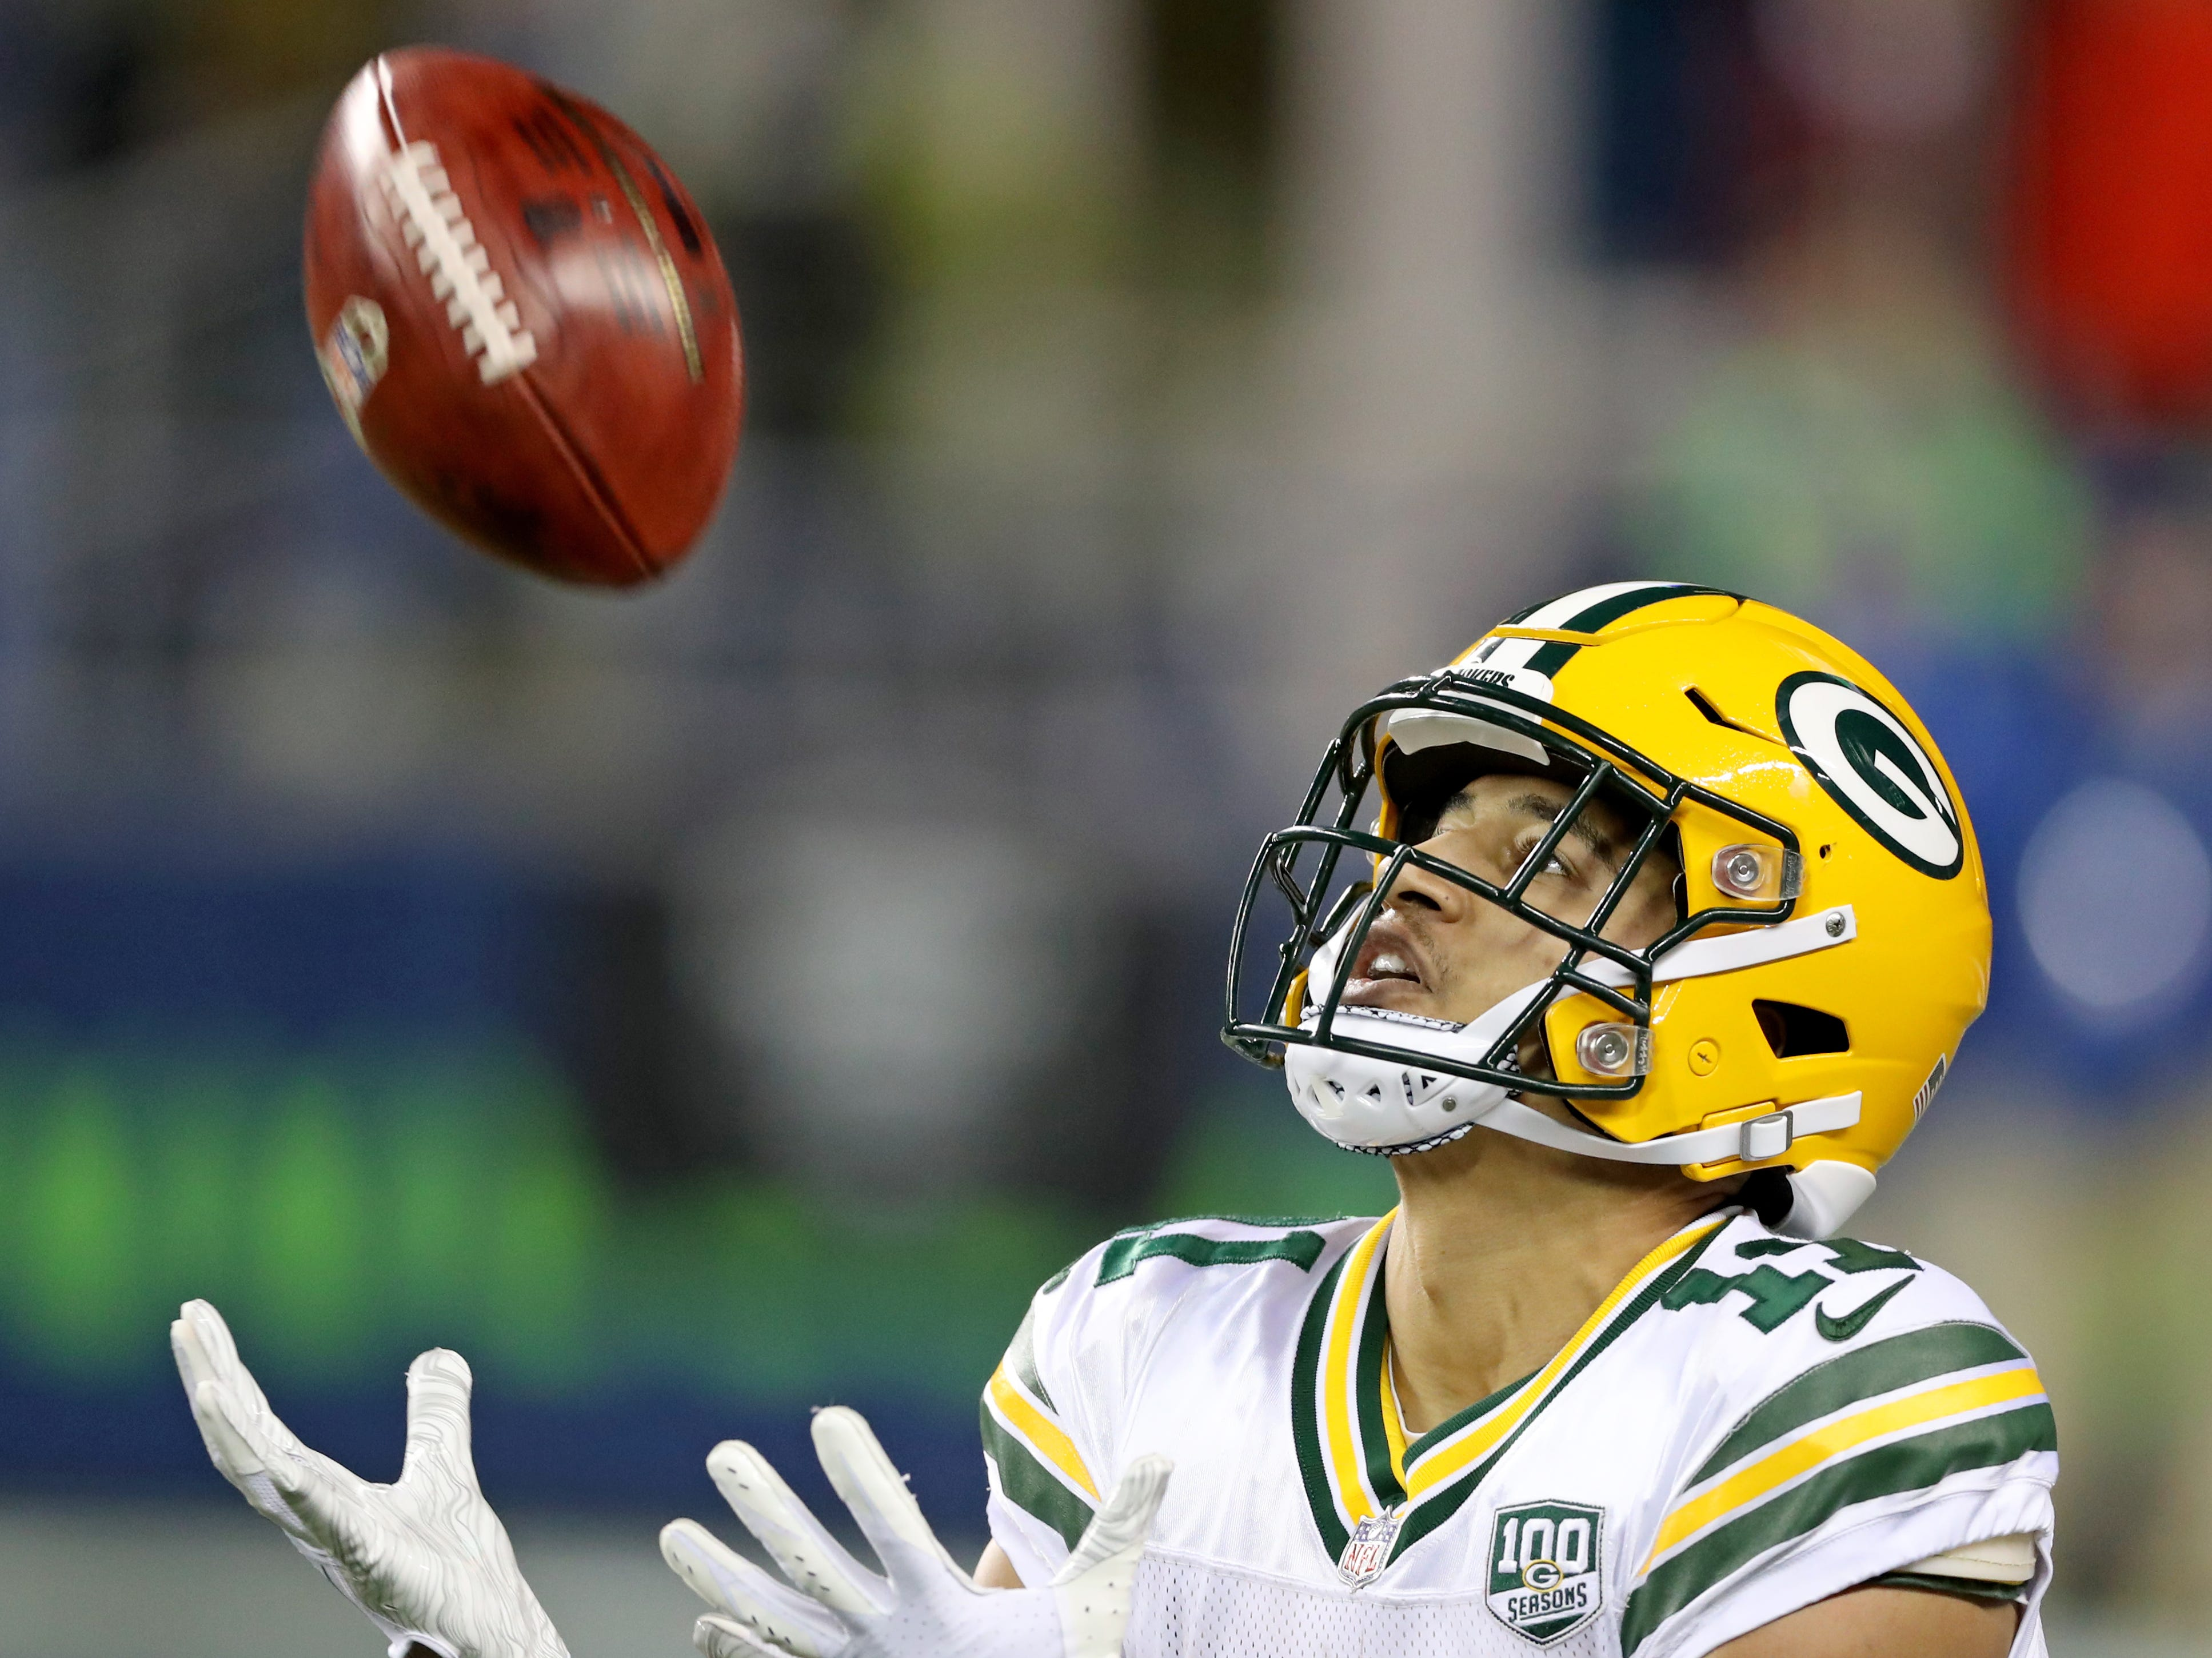 Green Bay Packers wide receiver Trevor Davis (11) fields a punt against the Seattle Seahawks at CenturyLink Field Thursday, November 15, 2018 in Seattle, WA. Jim Matthews/USA TODAY NETWORK-Wis